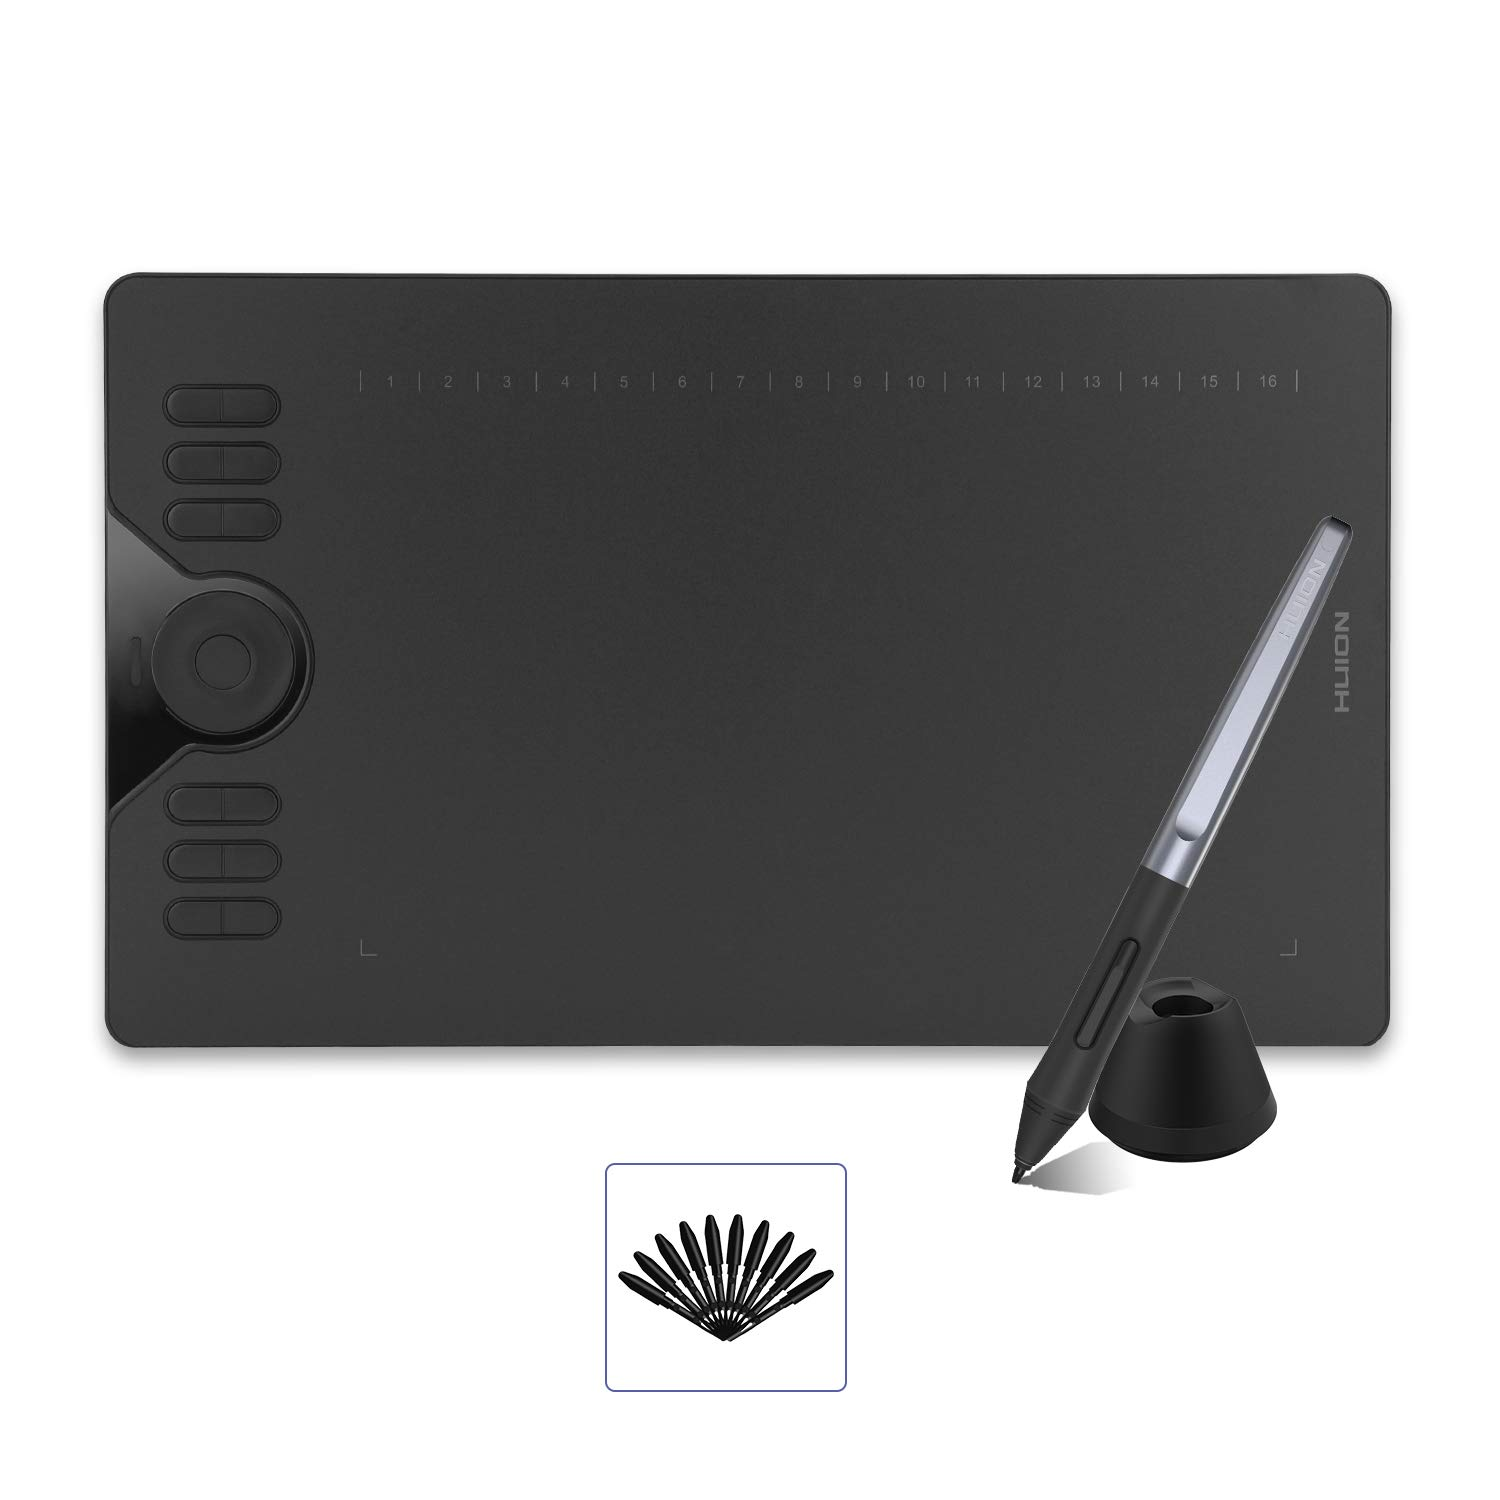 HUION HS610 Drawing Tablet Android Support OTG Graphics Tablet with Battery-Free Stylus 8192 Pressure Sensitivity Tilt Touch Ring for Artist Animation Beginner-10x6.25 inch